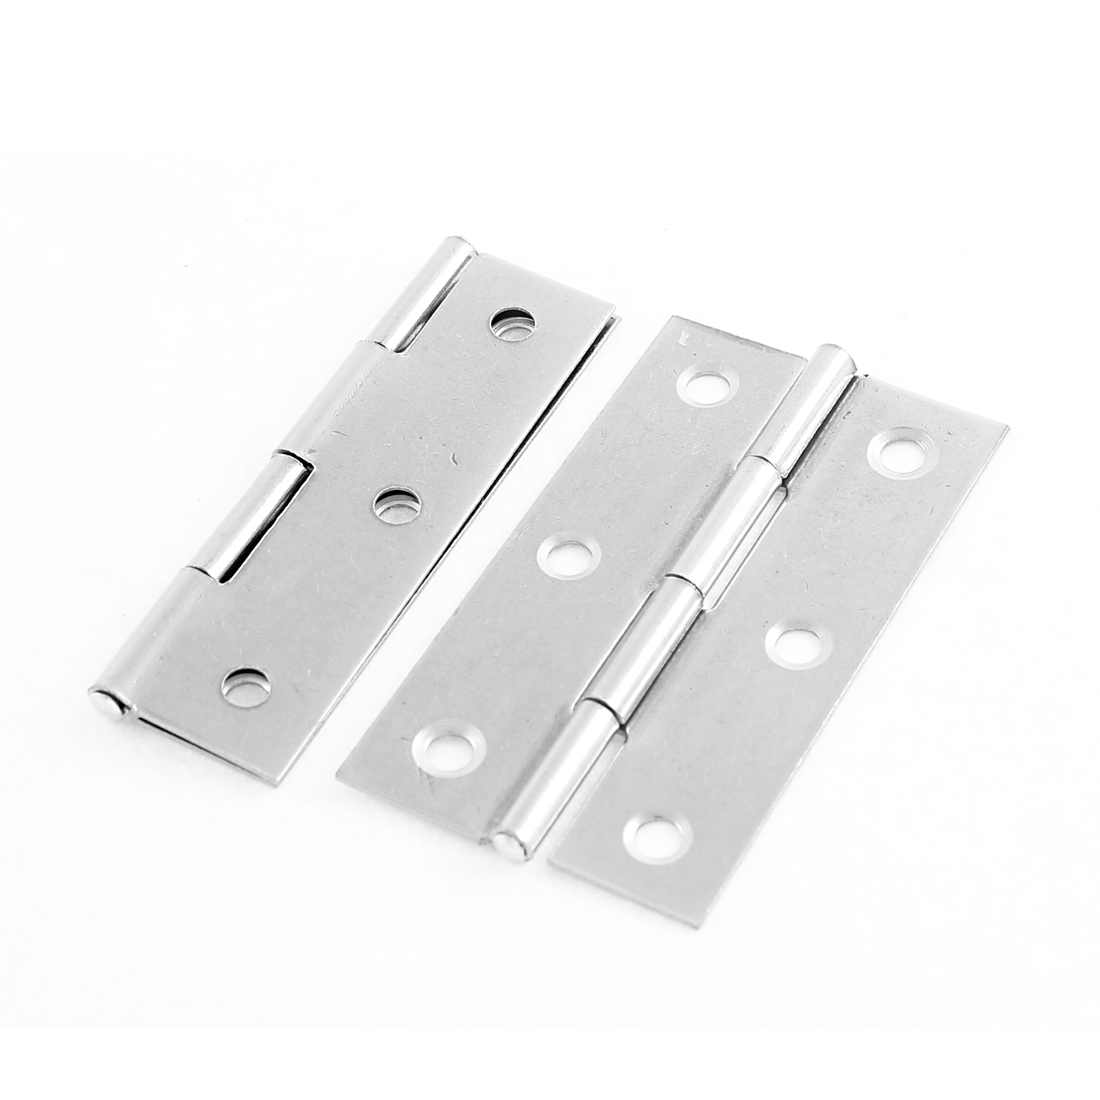 "Home Cabinet Chest Cupboard Door Stainless Steel Butt Hinge 3"" 2 PCS"